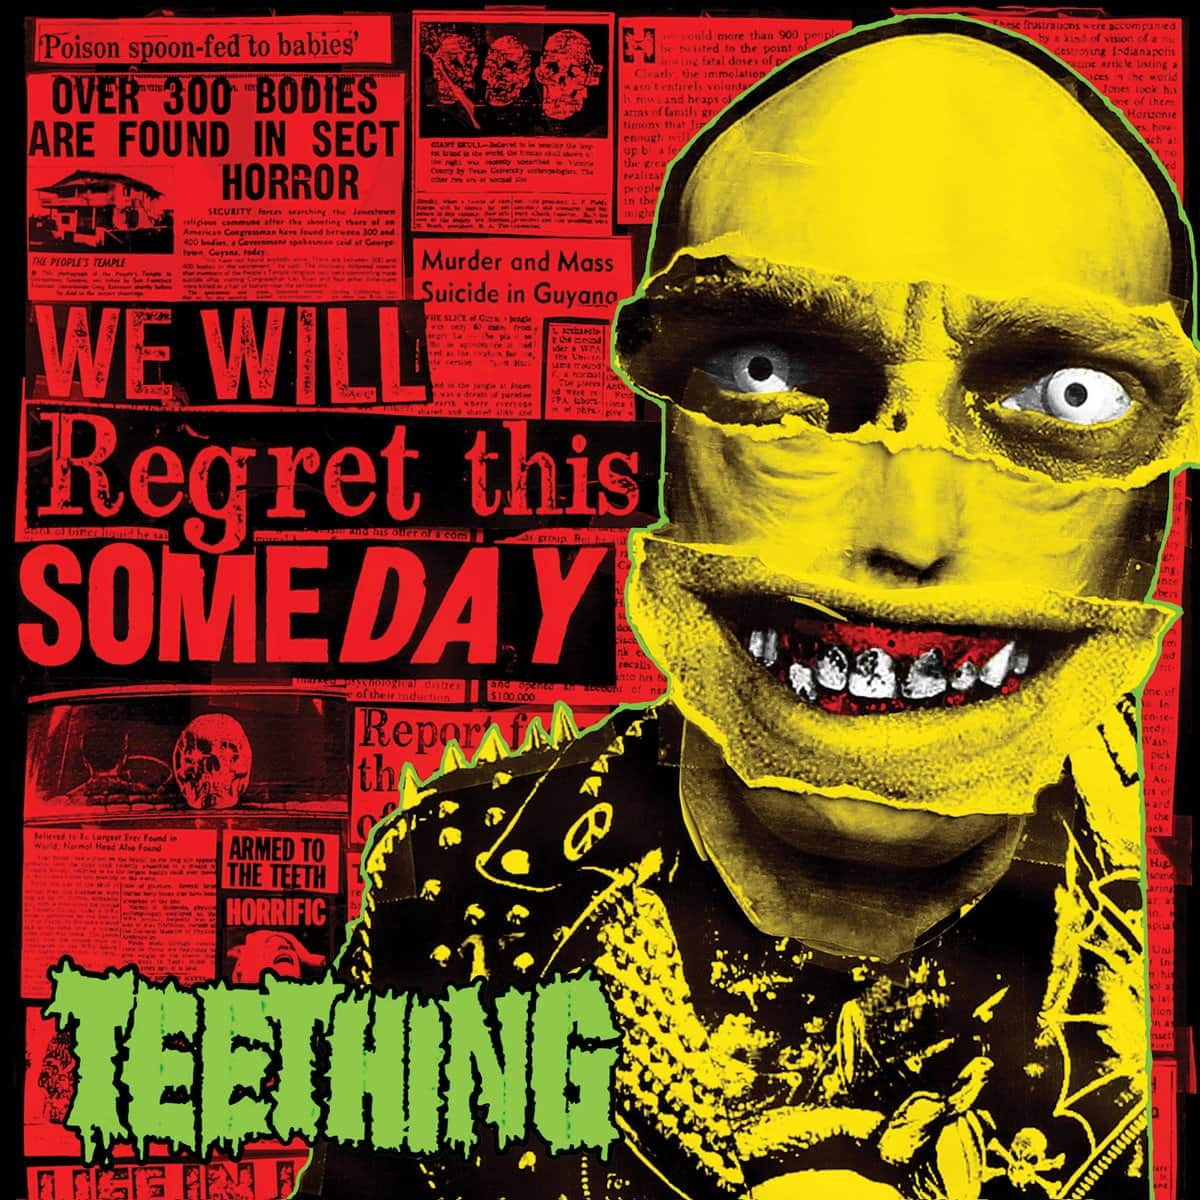 TEETHING – We will regret this someday, 2017